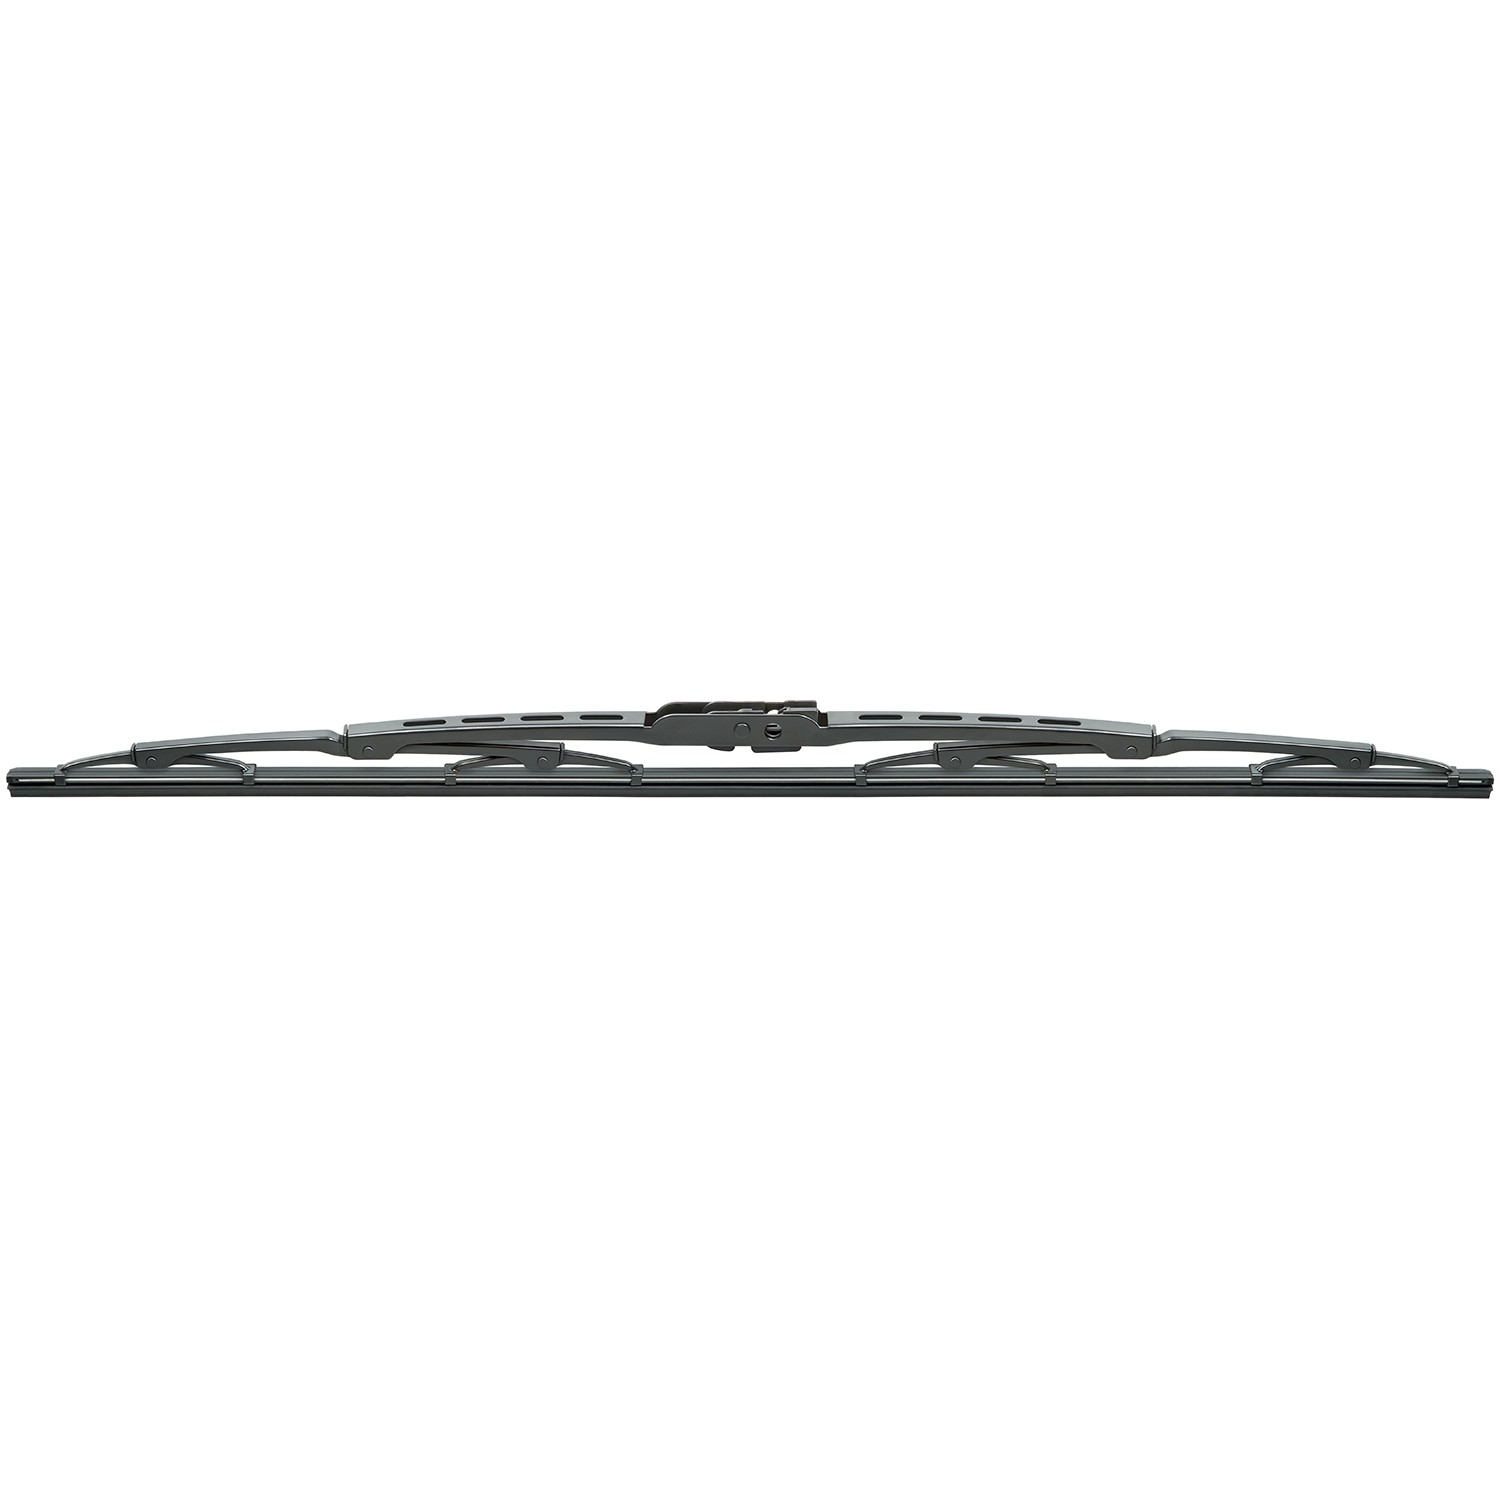 TRICO - Windshield Wiper Blade - TRI 30-221